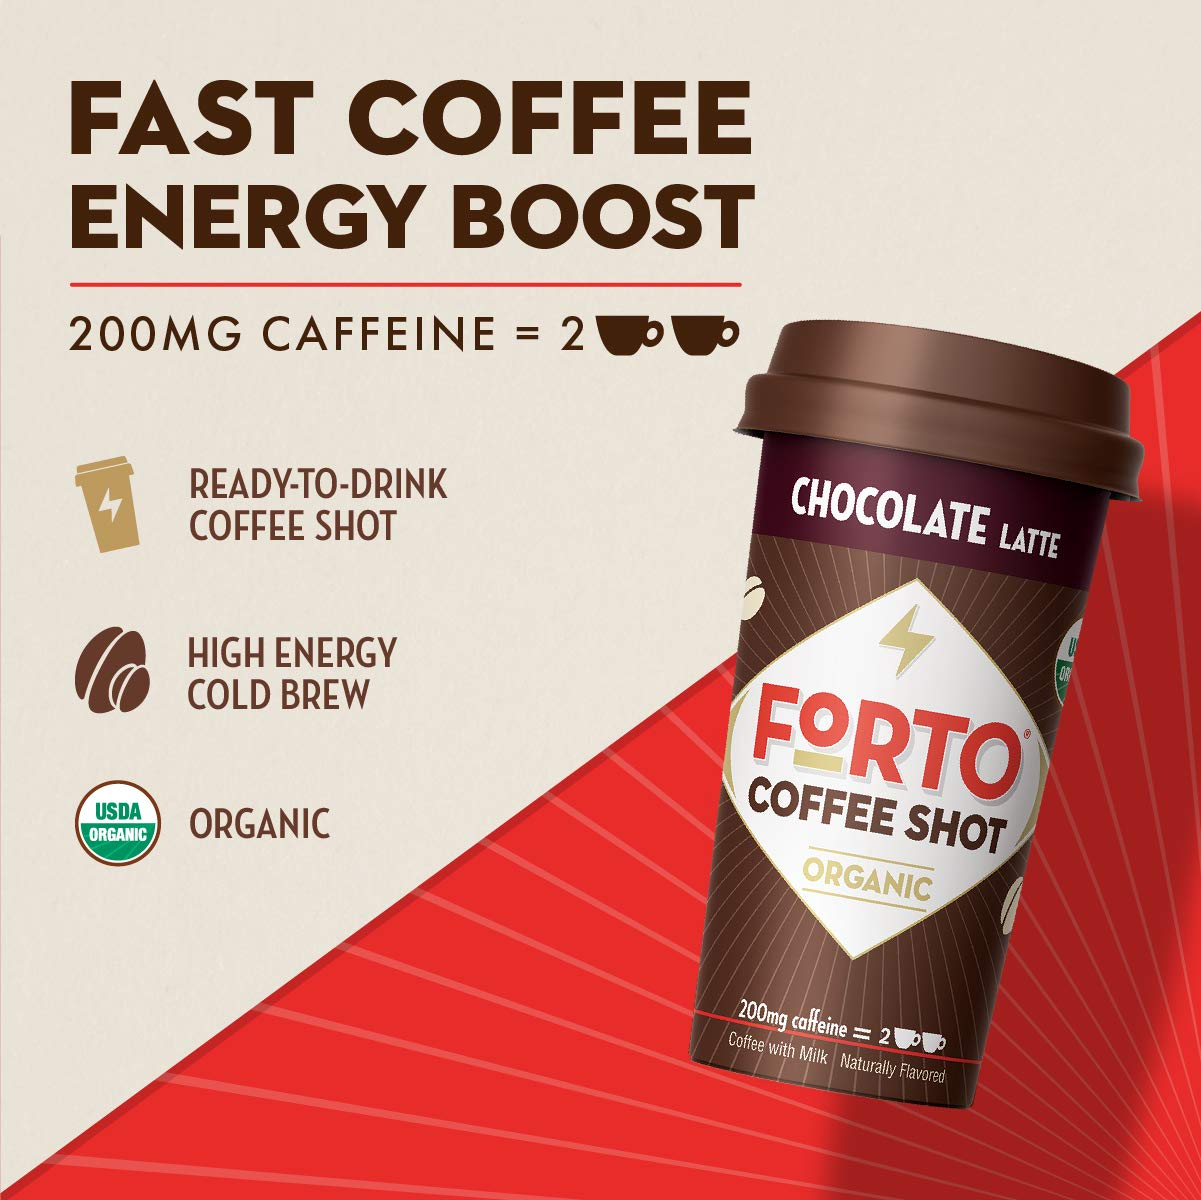 FORTO Coffee Shots - 200mg Caffeine, Variety Pack, High Caffeine Cold Brew Coffee, Bottled Fast Coffee Energy Boost, 12 Pack by FORTO (Image #3)